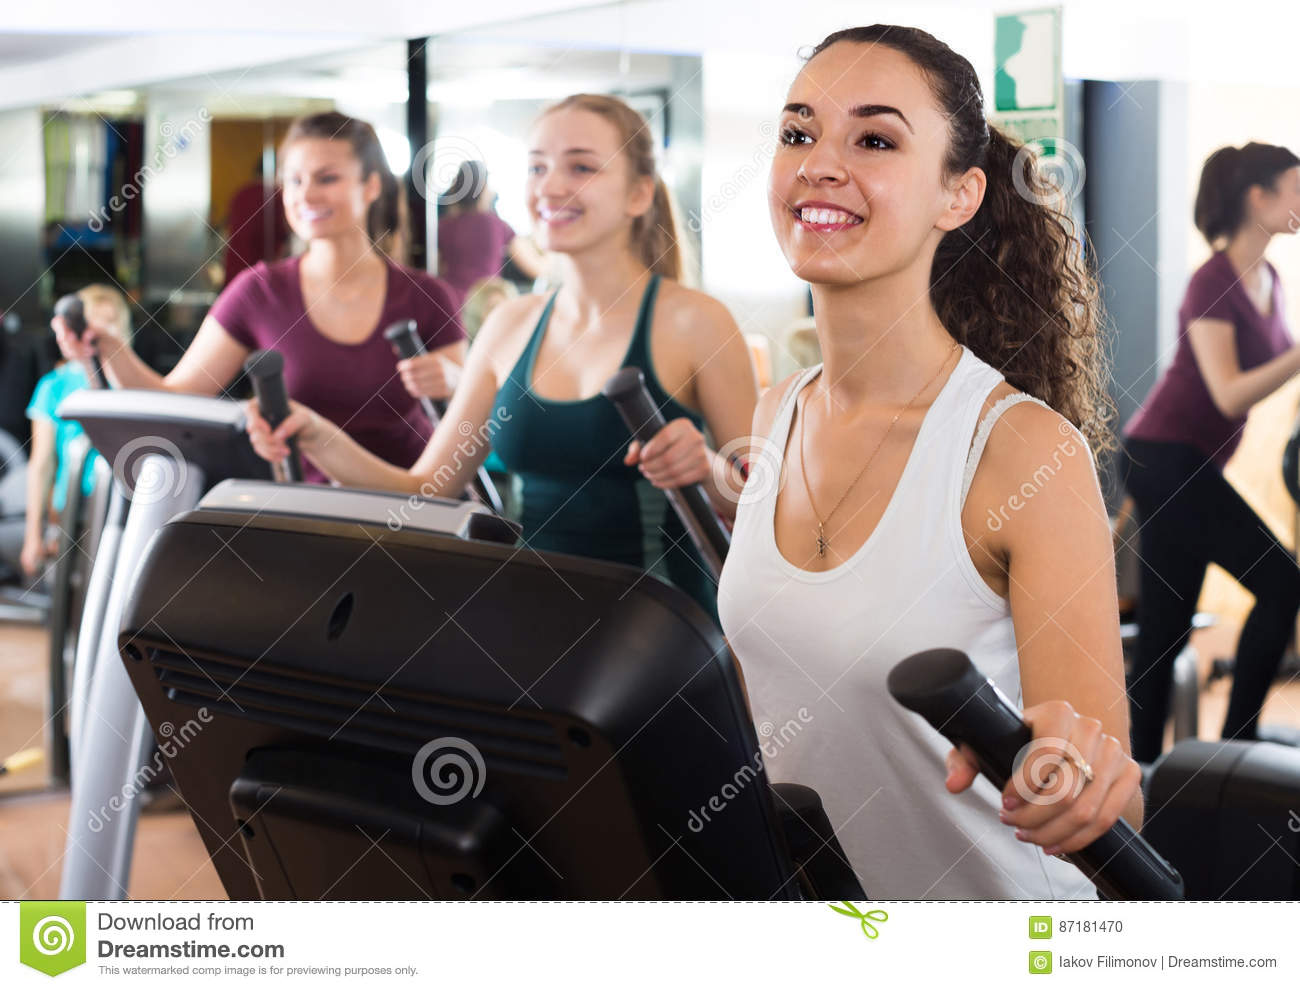 Females training on elliptical trainers in fitness club